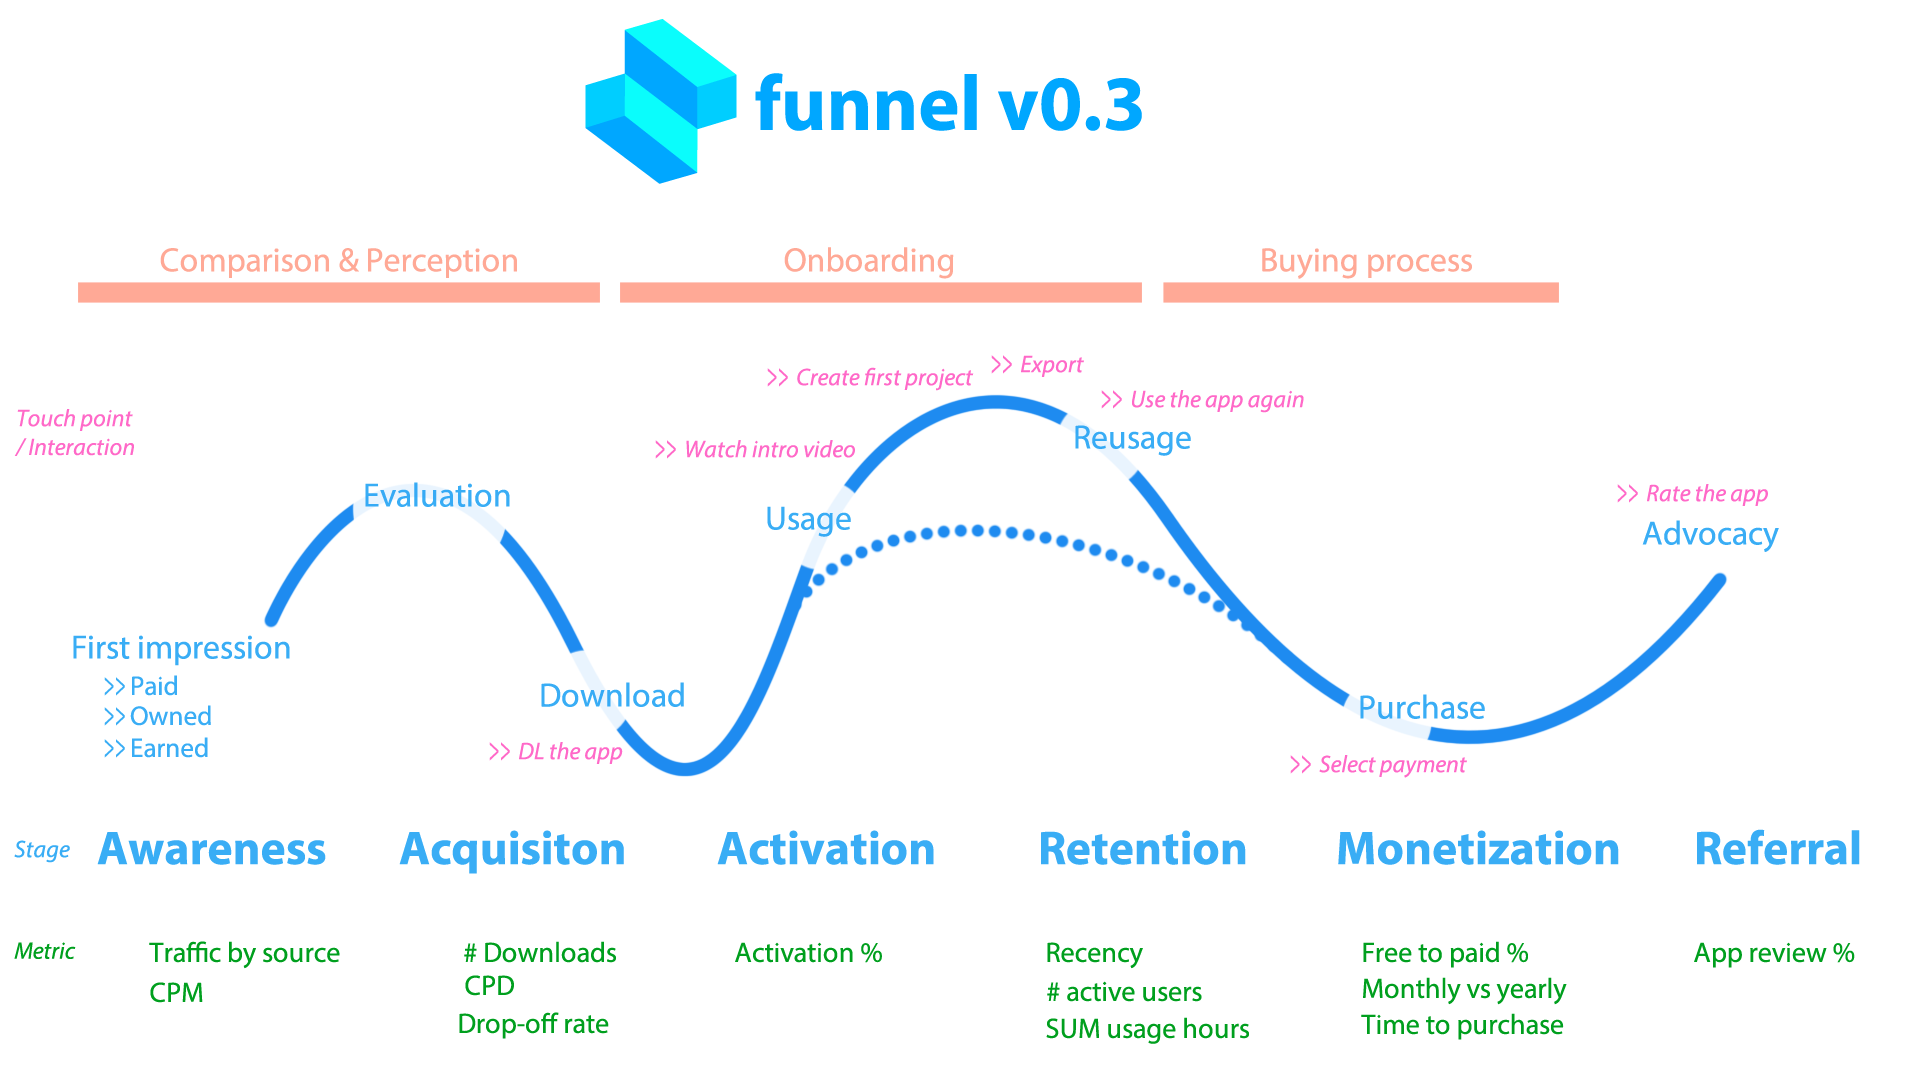 shapr3d-funnel-v0.3